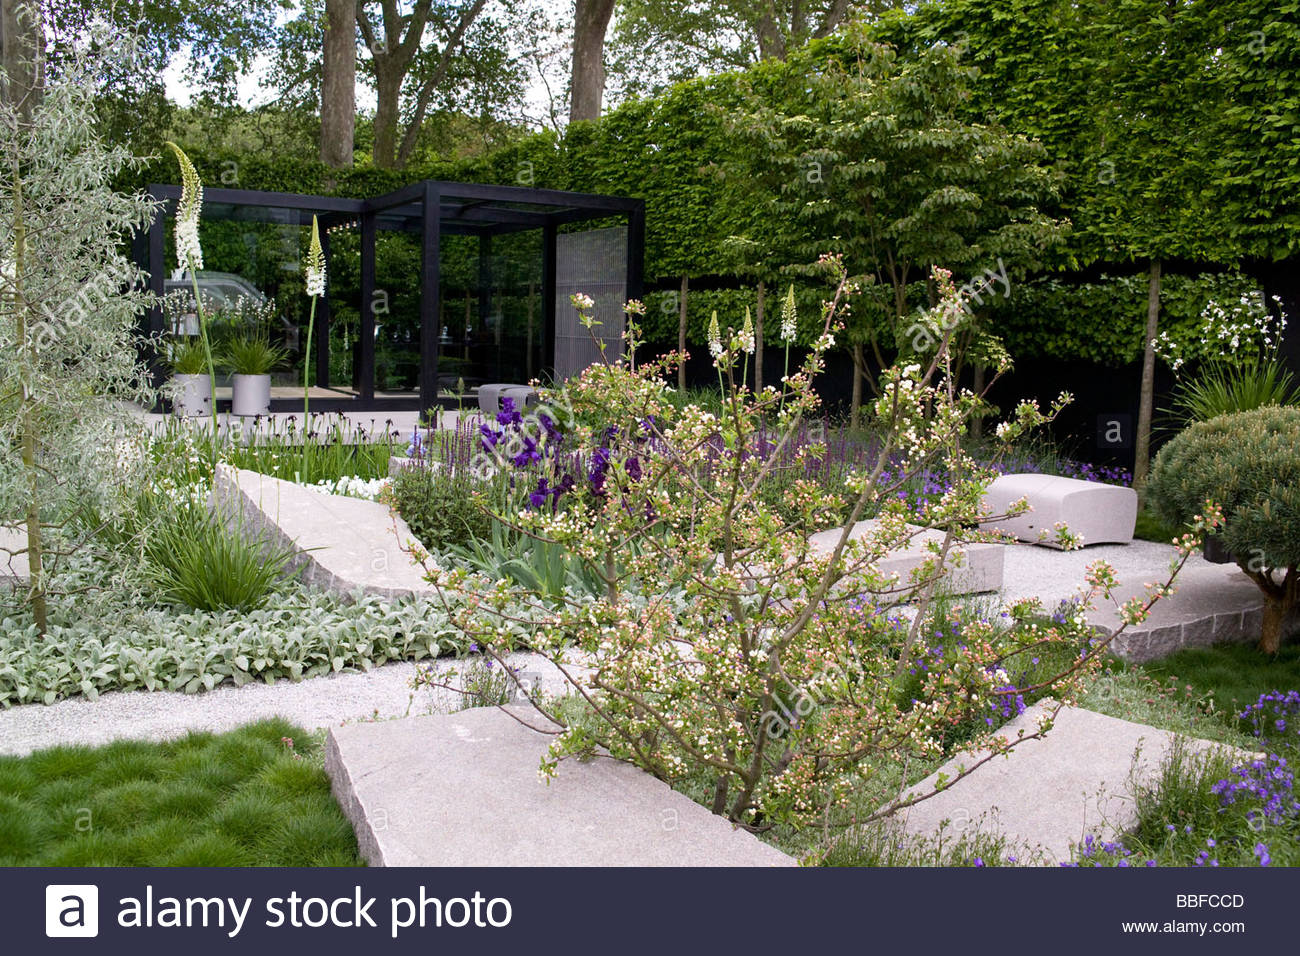 The daily telegraph garden gold medal best in show rhs chelsea stock photo royalty free - Chelsea flower show gold medal winners ...